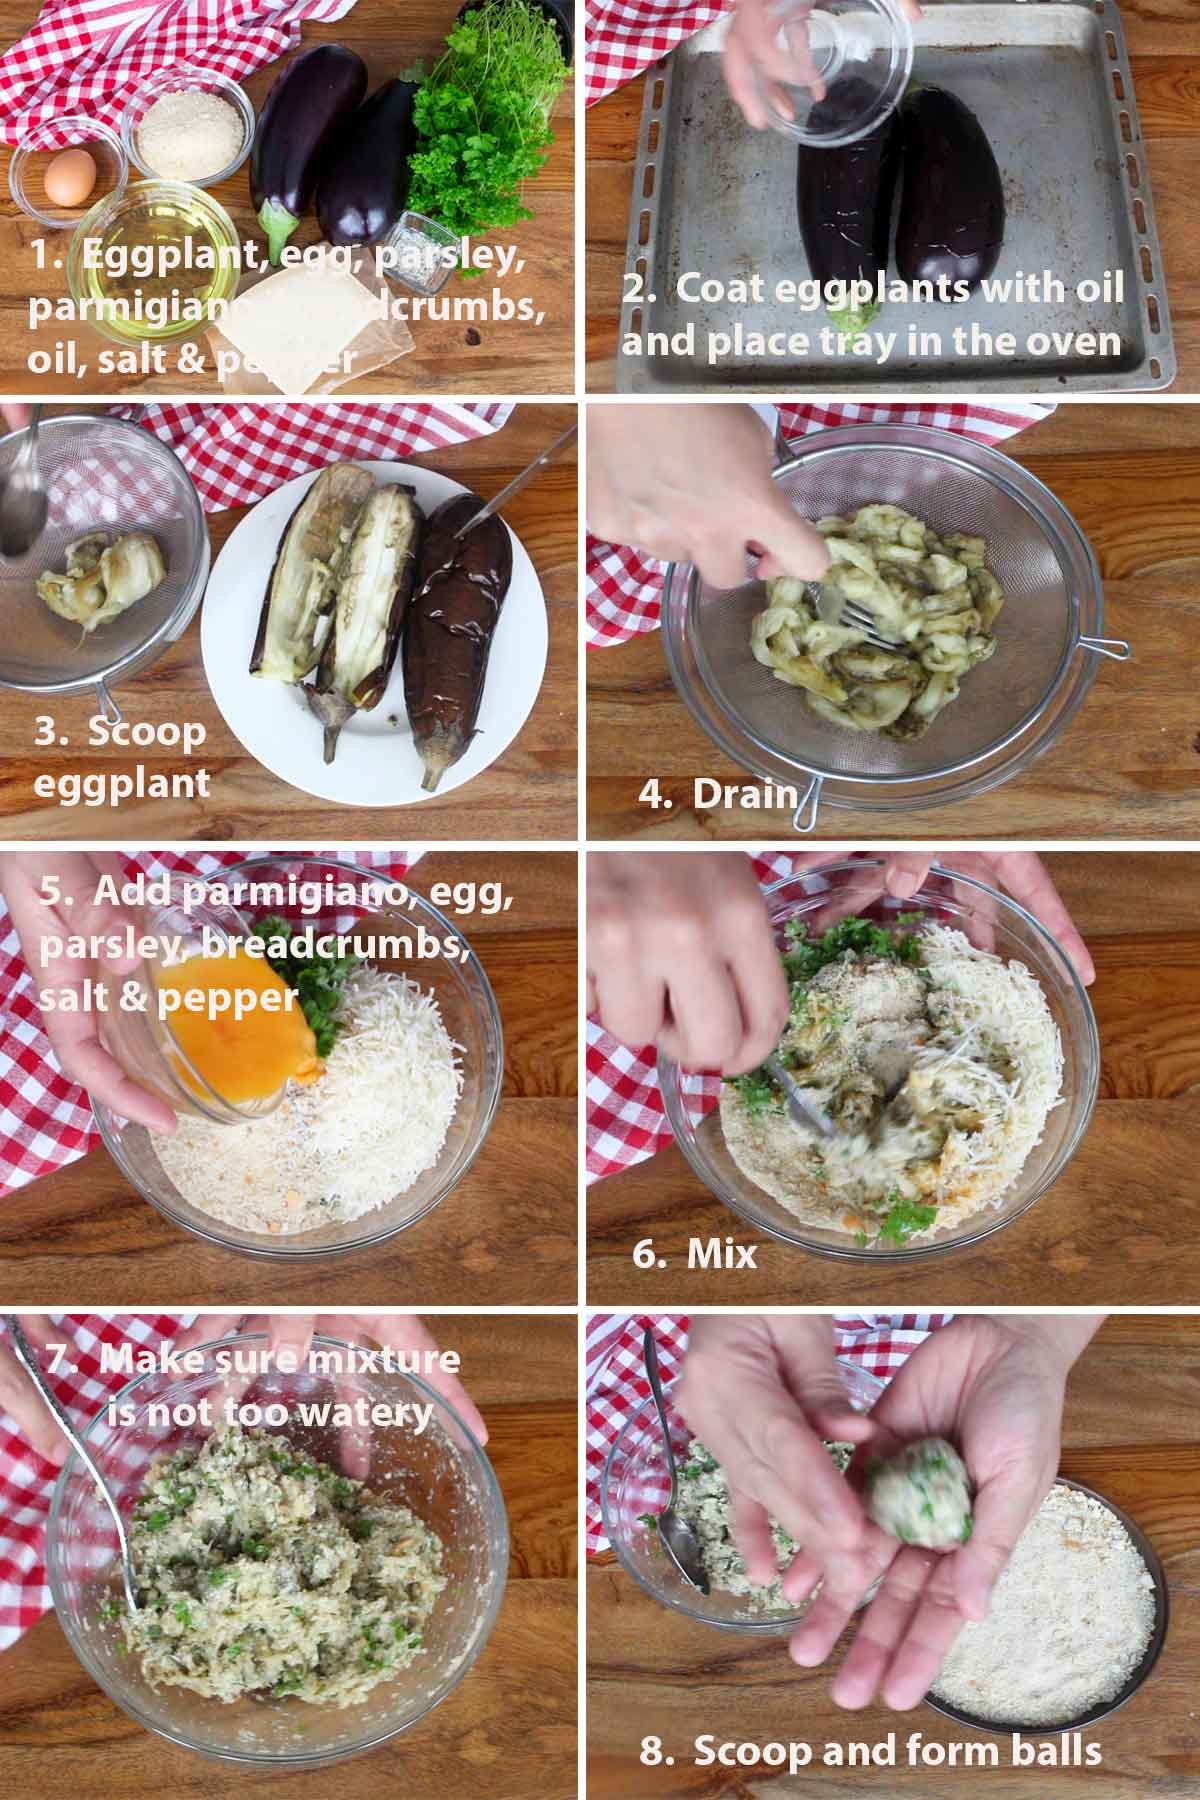 First part of a collage of images showing the step by step process on how to make Eggplant Meatballs (Polpette di Melanzane), including the ingredients needed.